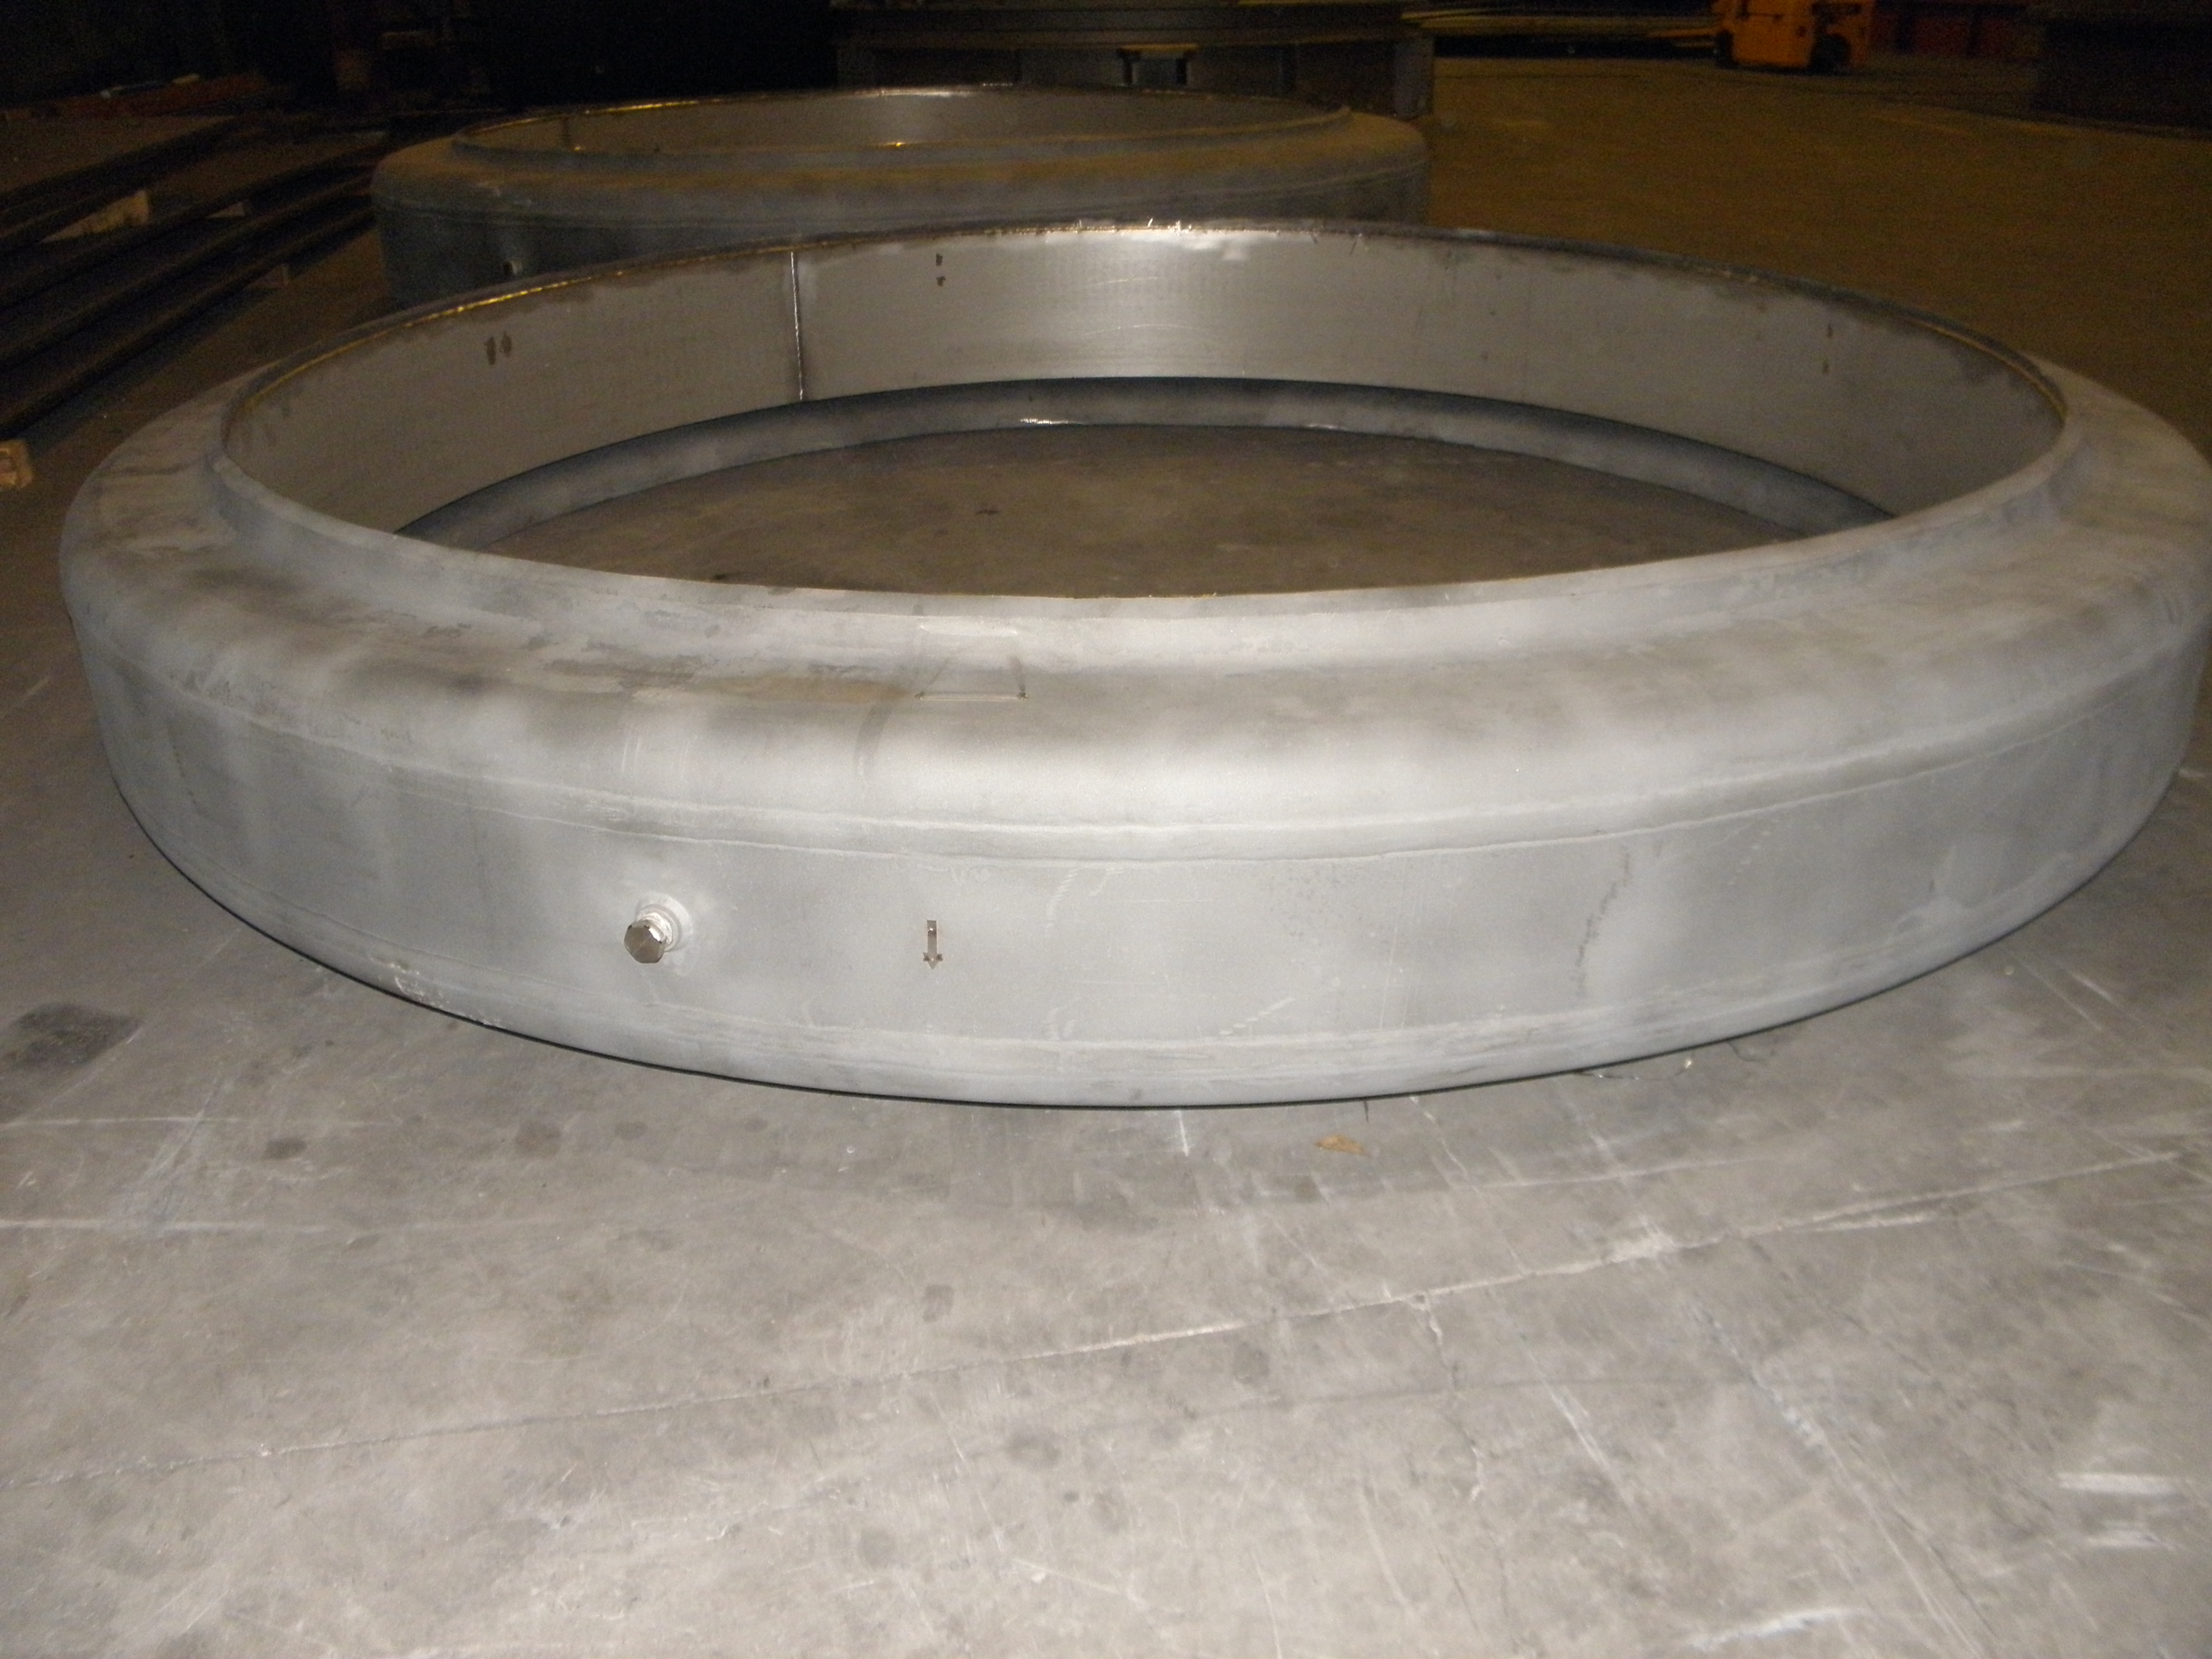 Flanged and flued example 3